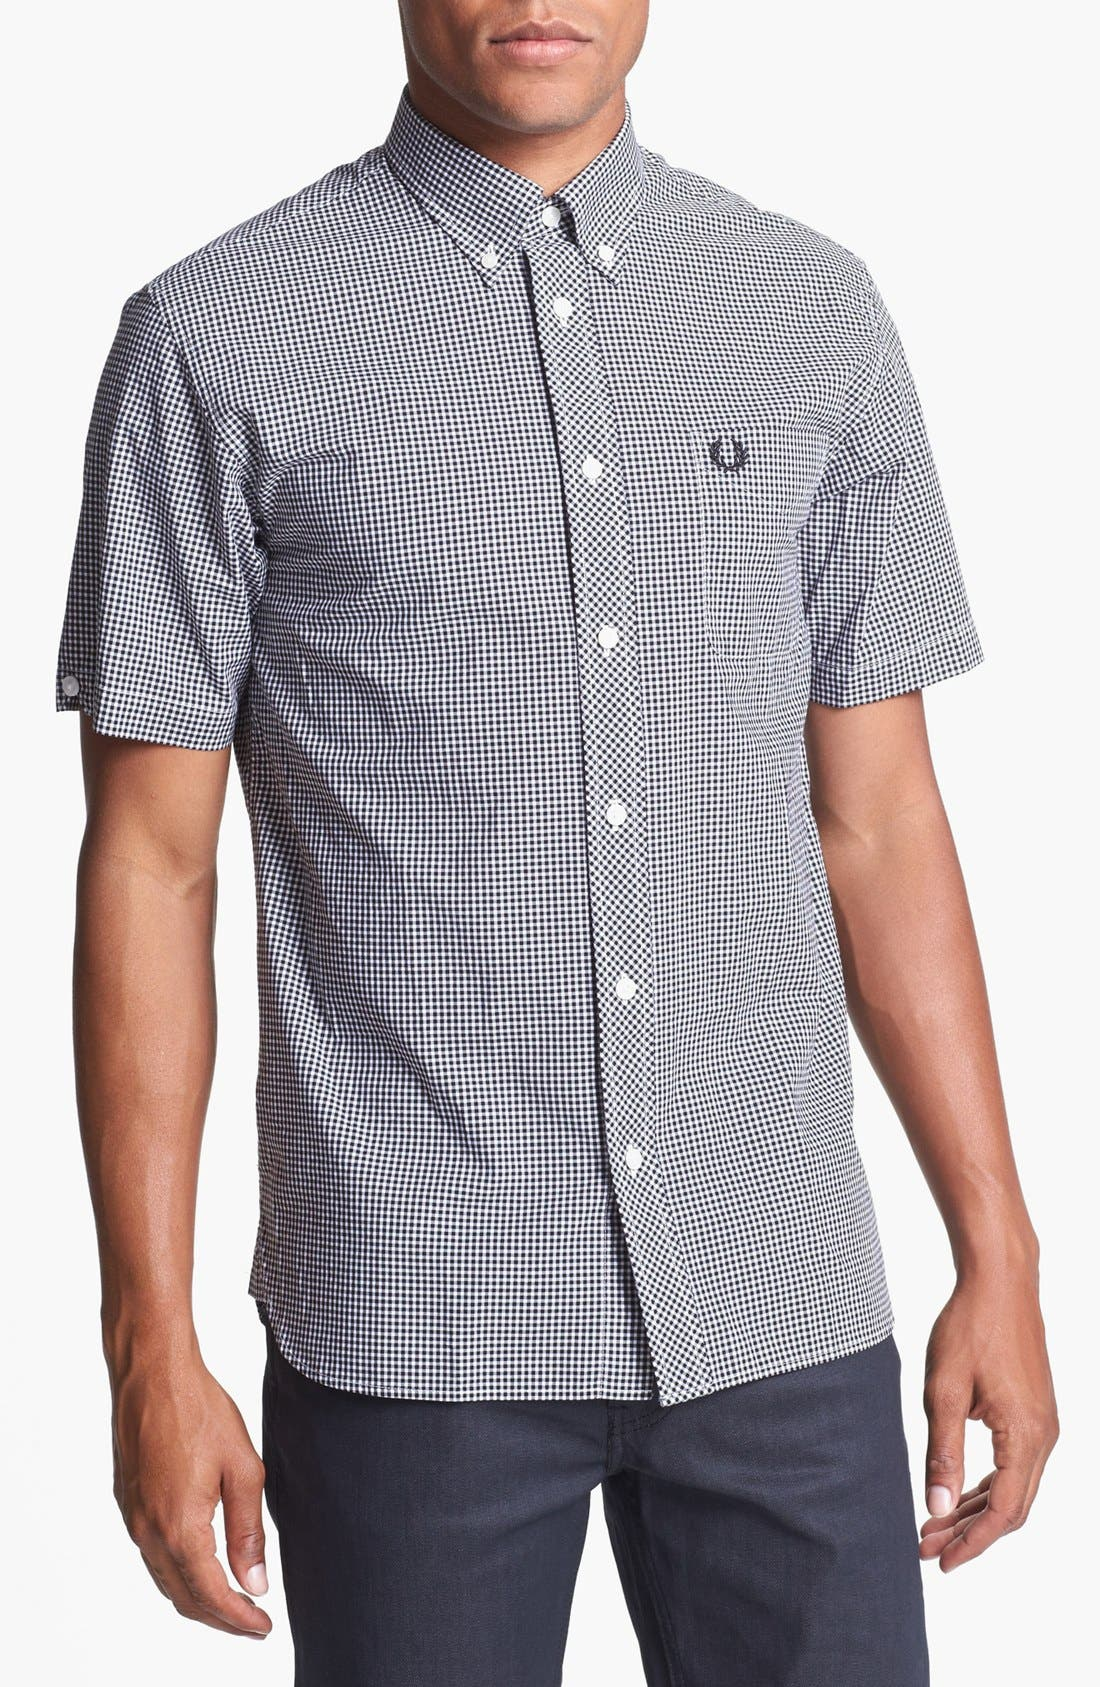 Main Image - Fred Perry Gingham Check Shirt